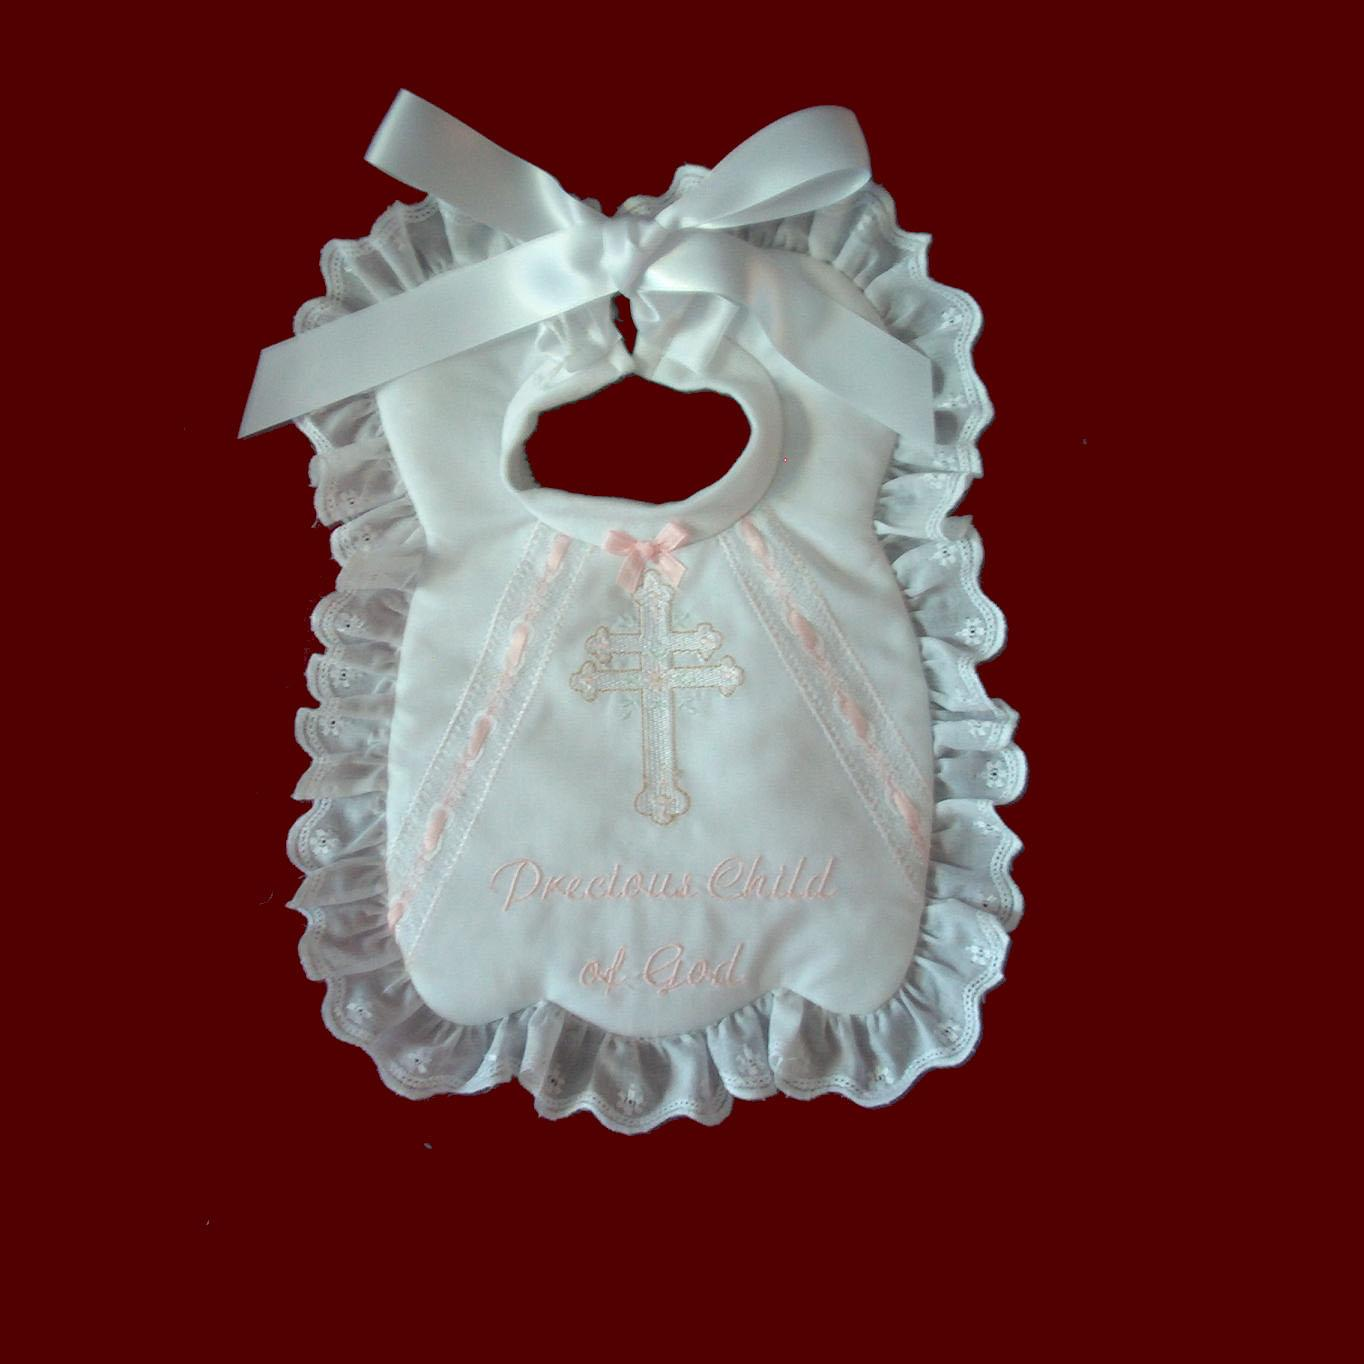 Precious Child of God Christening Bib